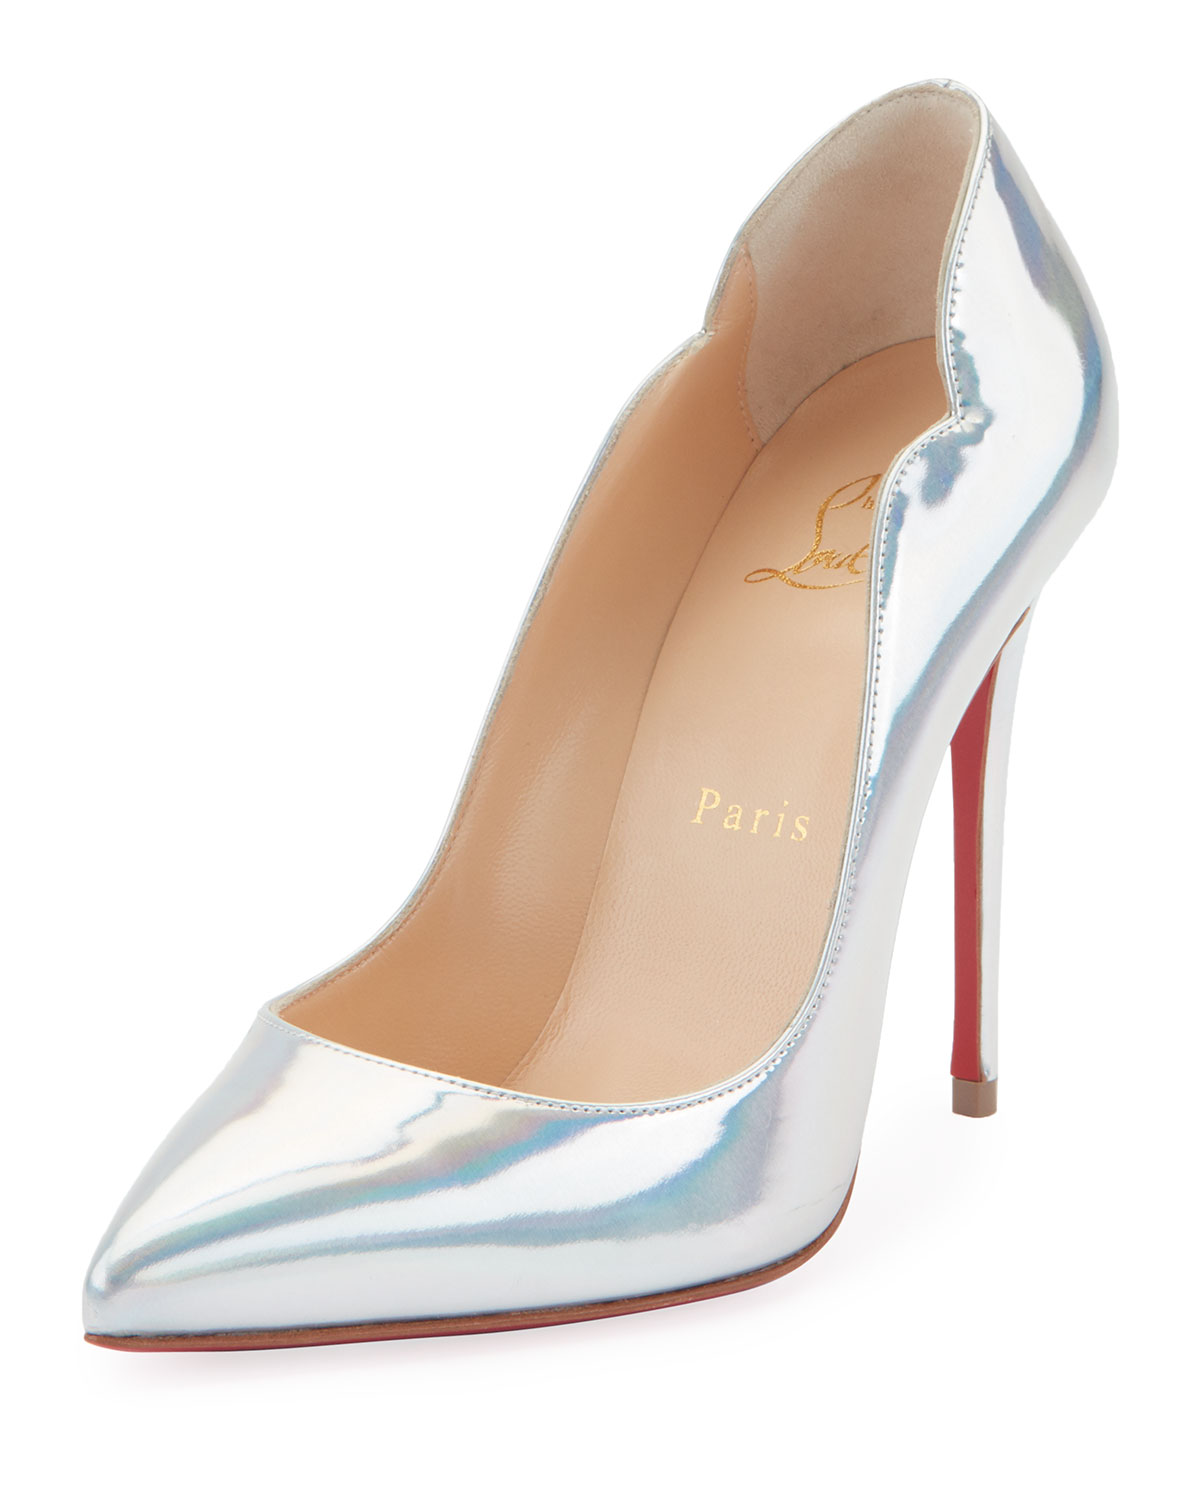 Hot Chick Holographic Red Sole Pumps in Silver